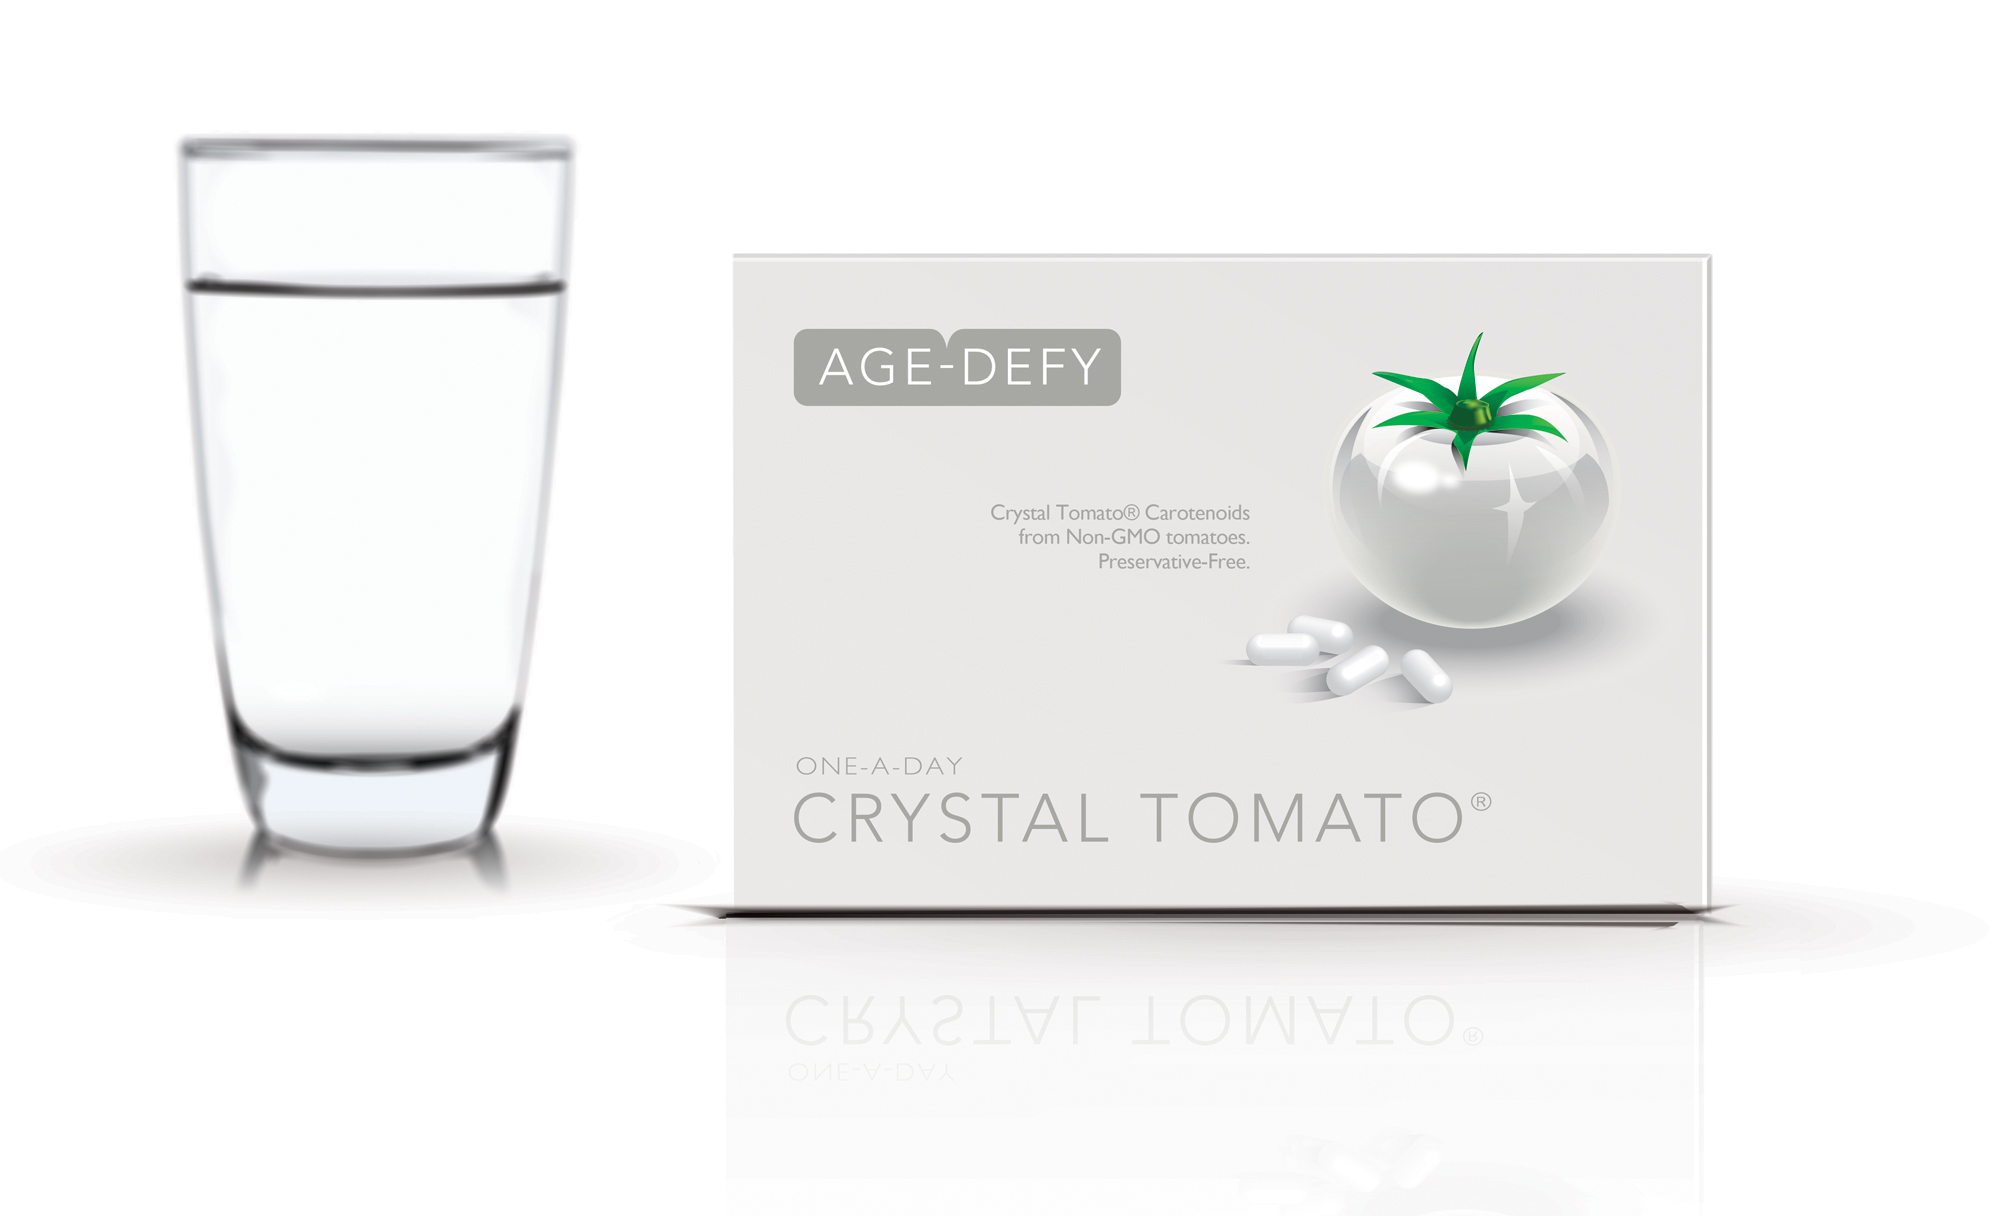 Crystal Tomato® supplements - just one a day for beautiful skin